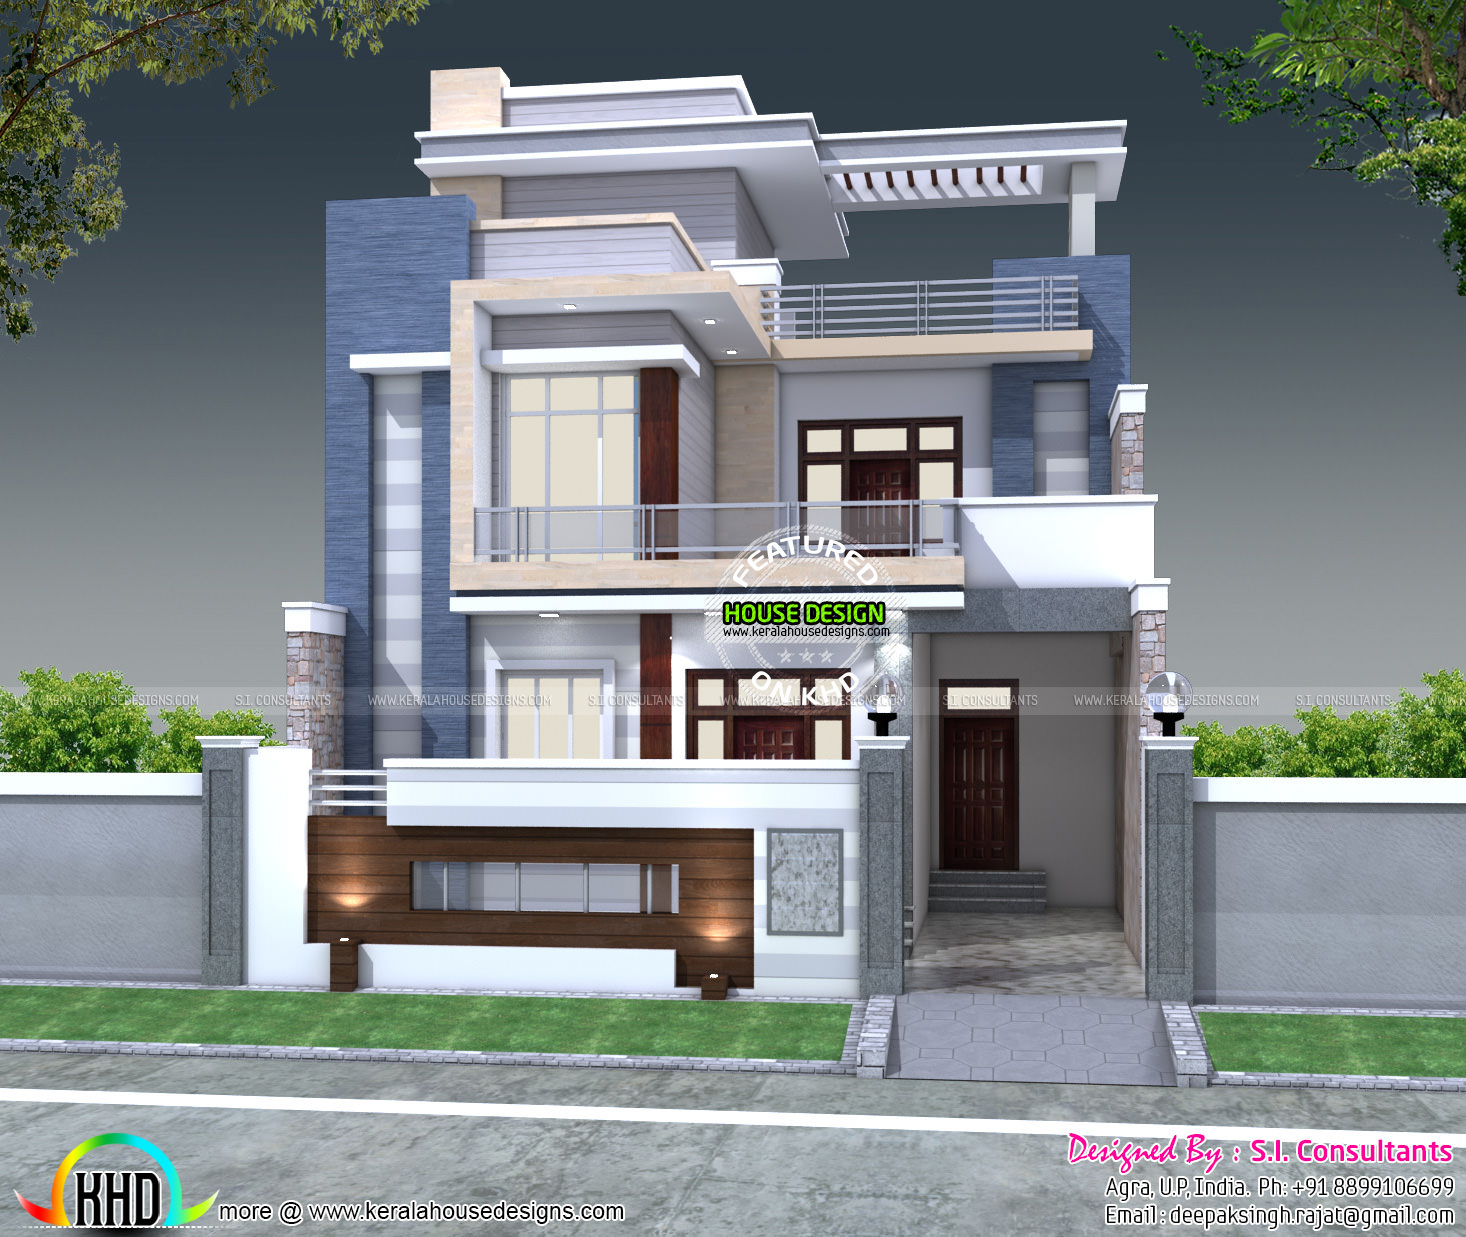 5 bedroom 30x60 house plan architecture kerala home for Home designers in my area